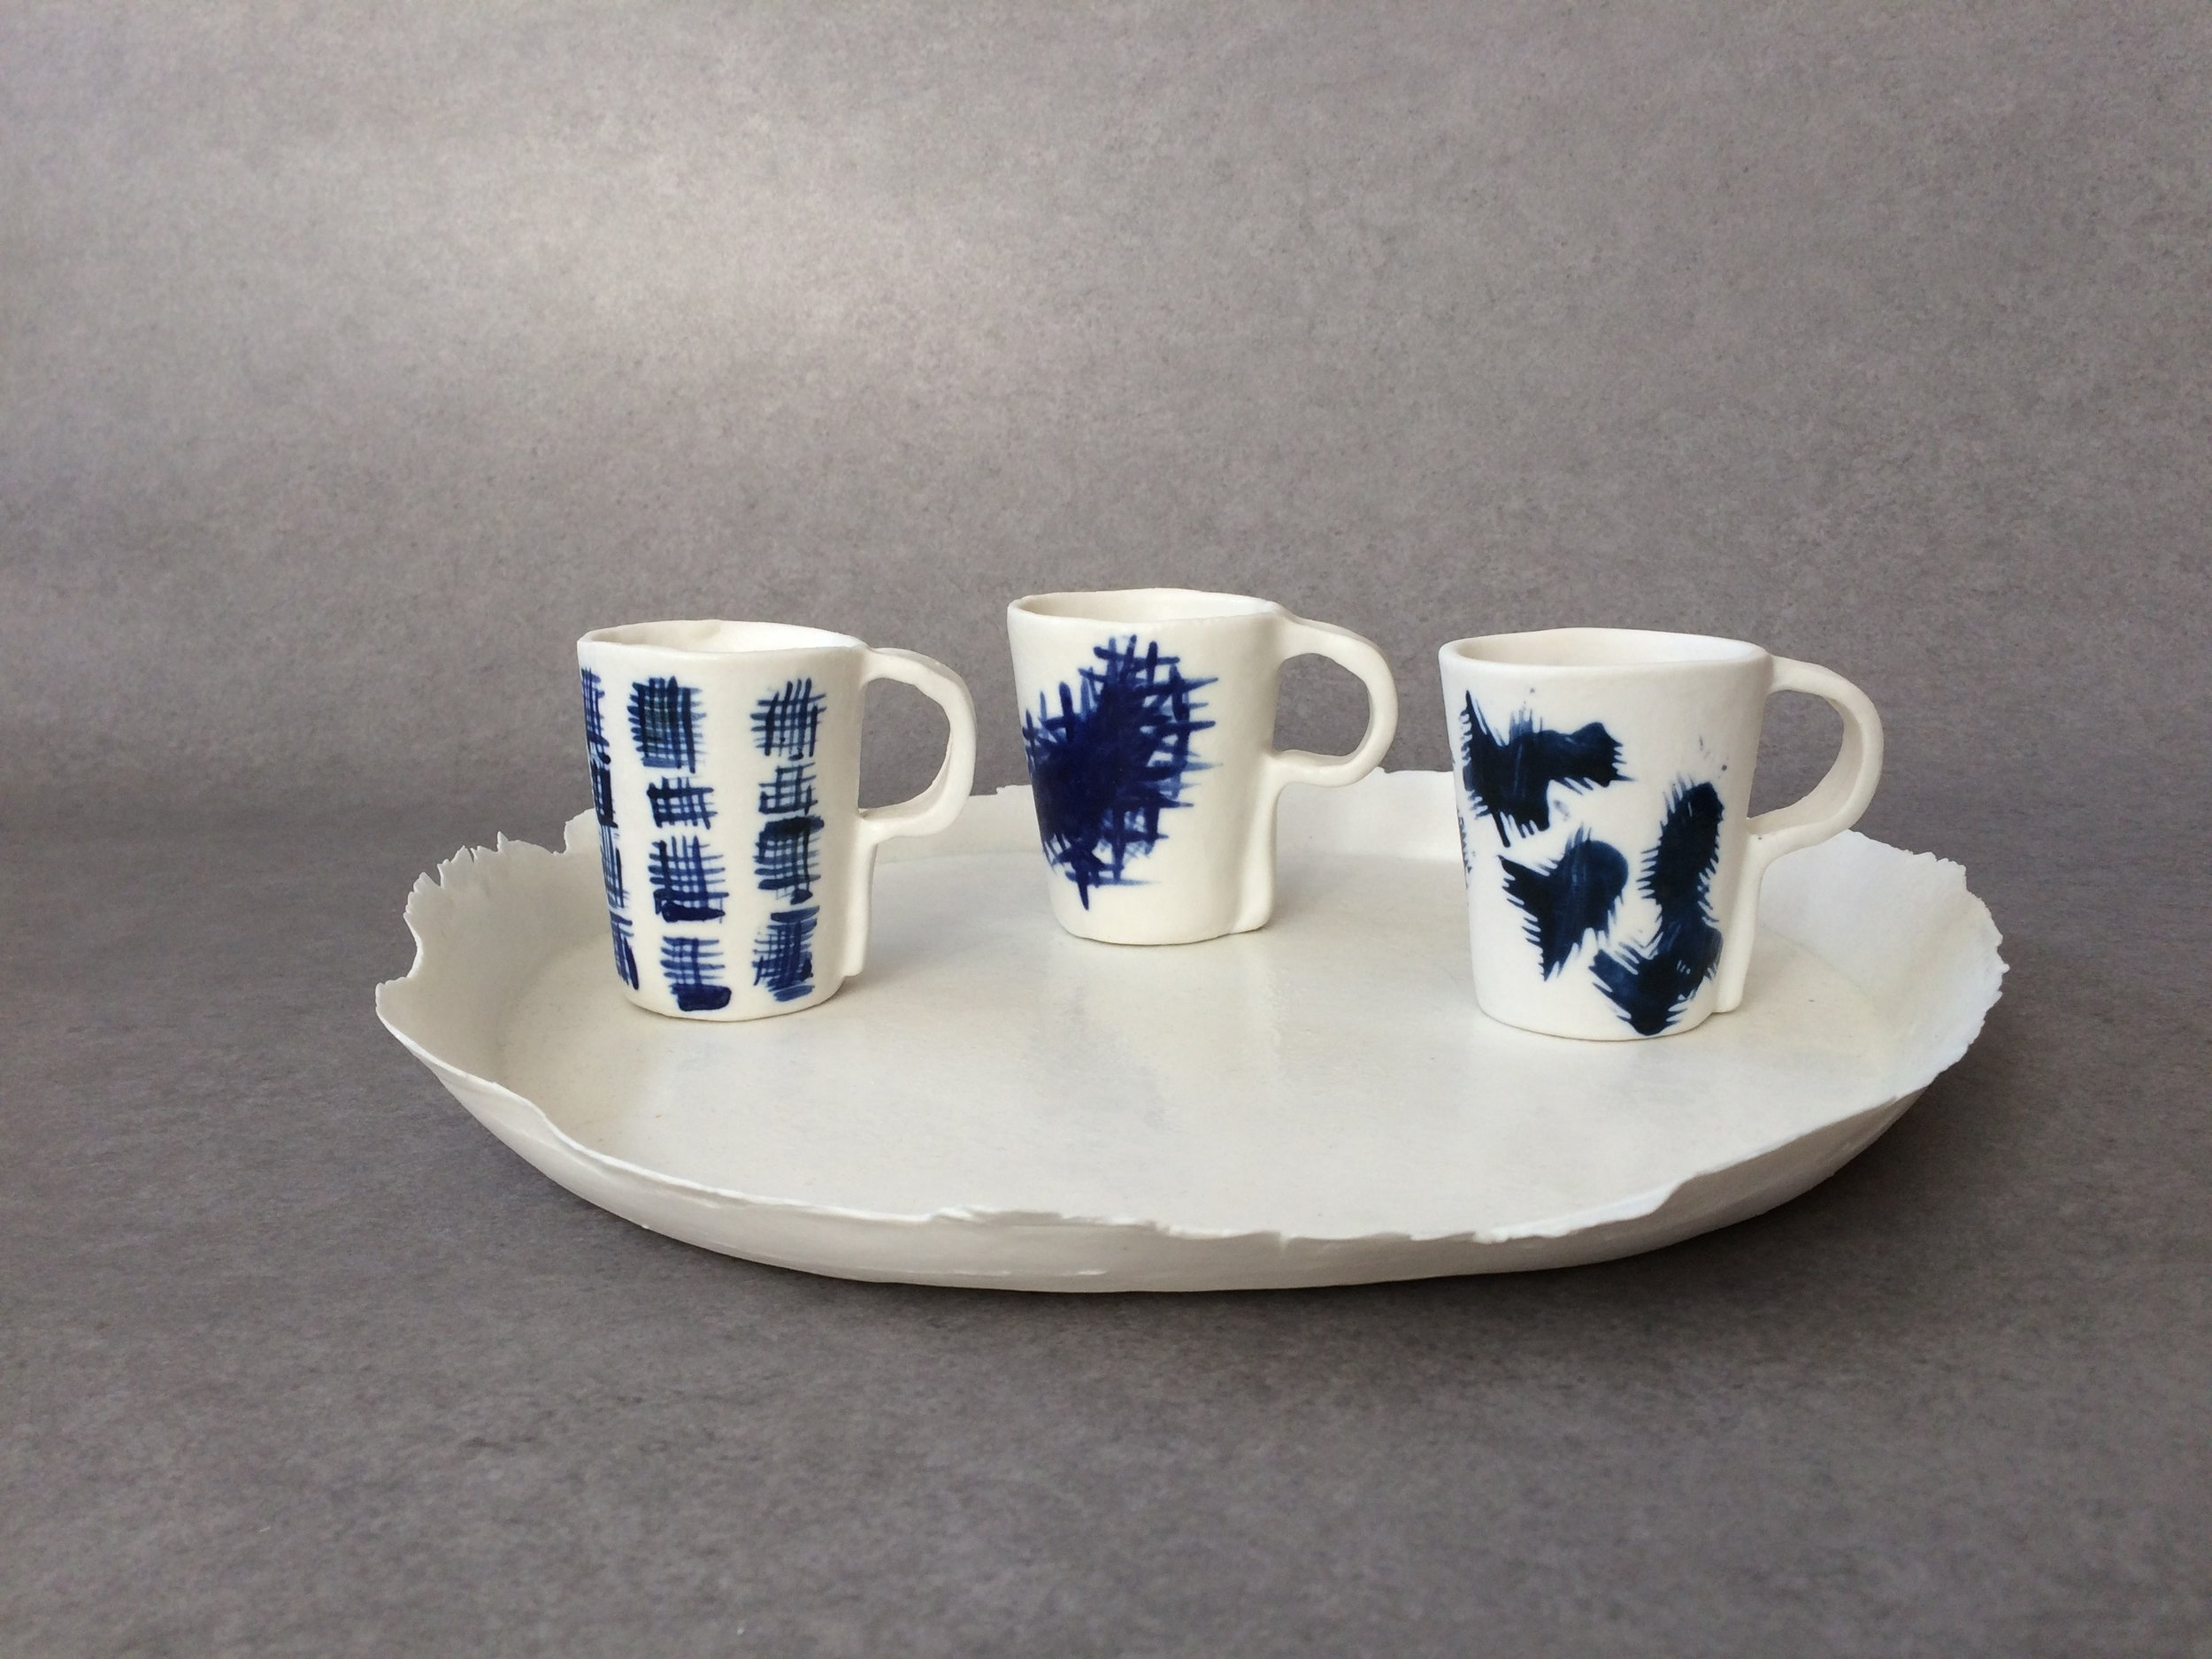 cups on white torn dish 3.jpg